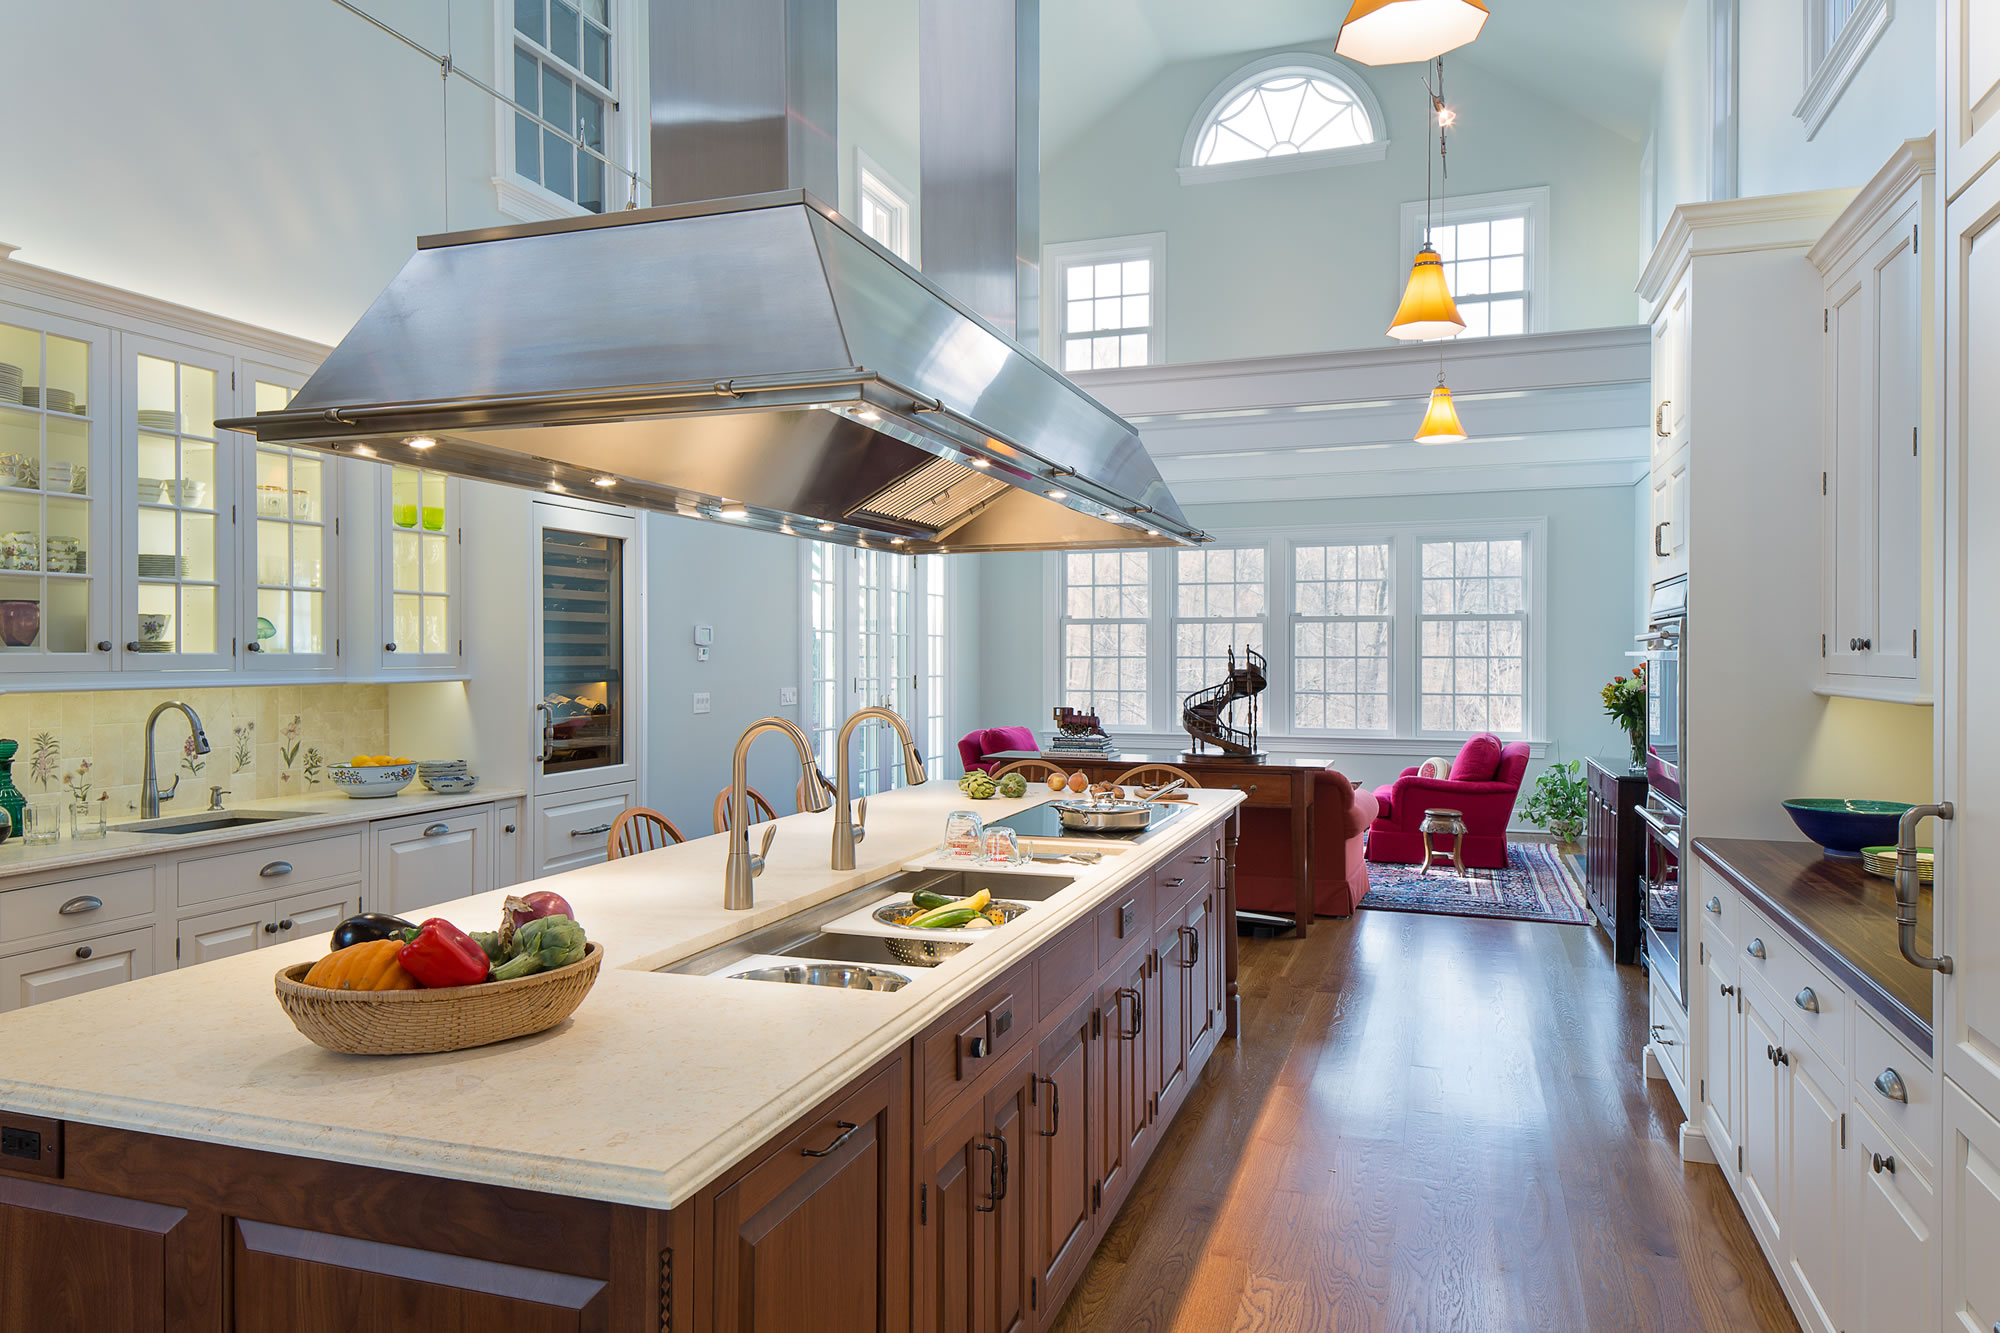 How to Find the Best Home Repair and Renovation Services in Pasadena